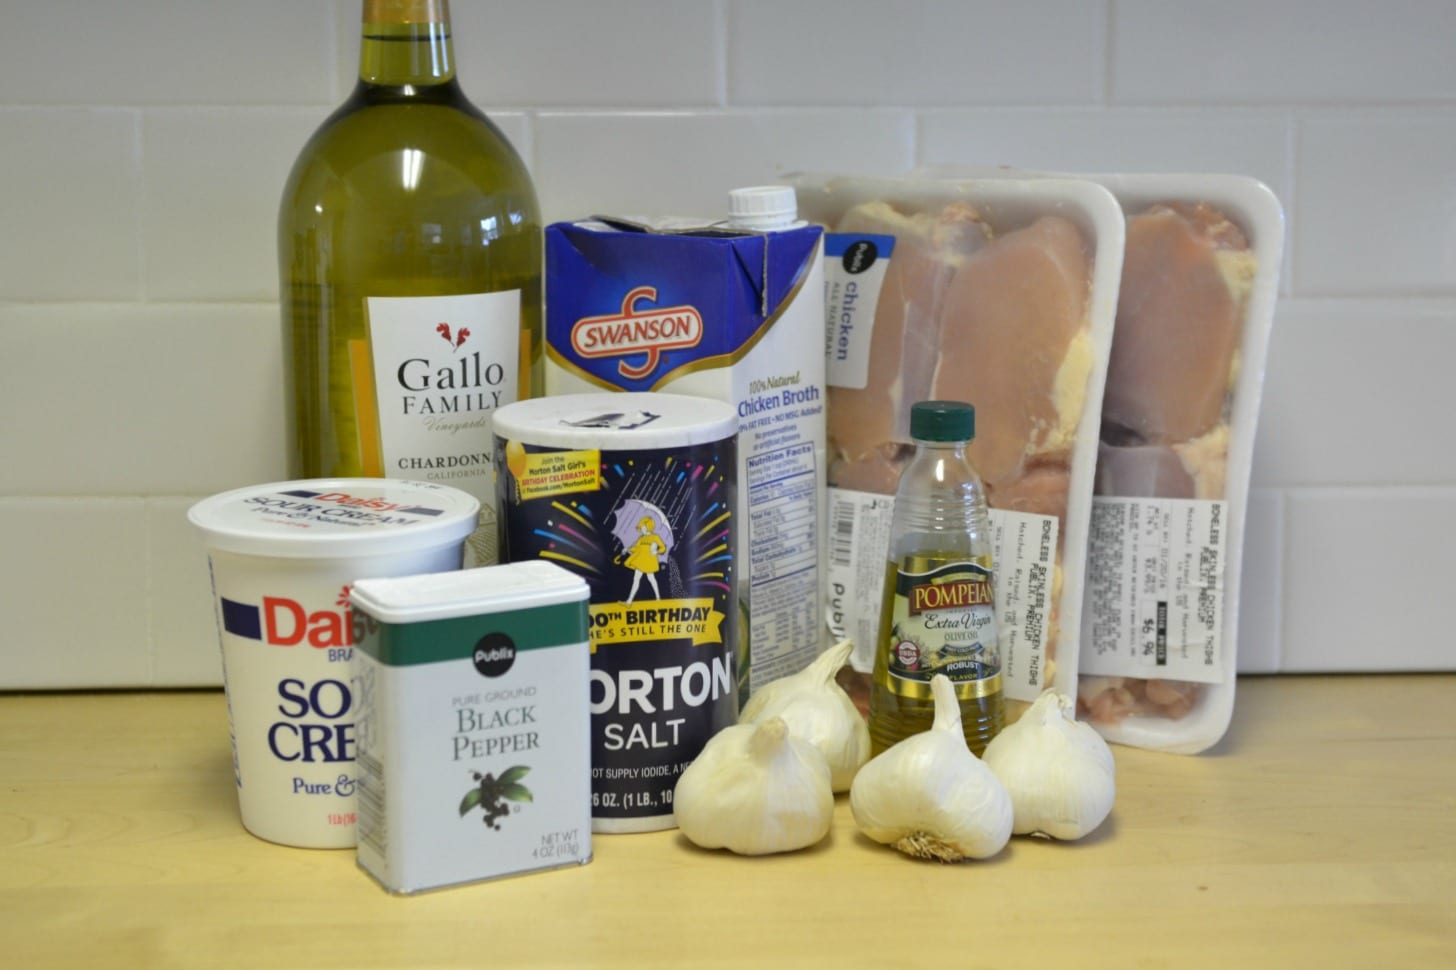 Assemble your ingredients for the garlic chicken including: Olive oil, white wine, chicken broth, sour cream, salt, pepper, boneless skinless chicken thighs, garlic, and fresh thyme.